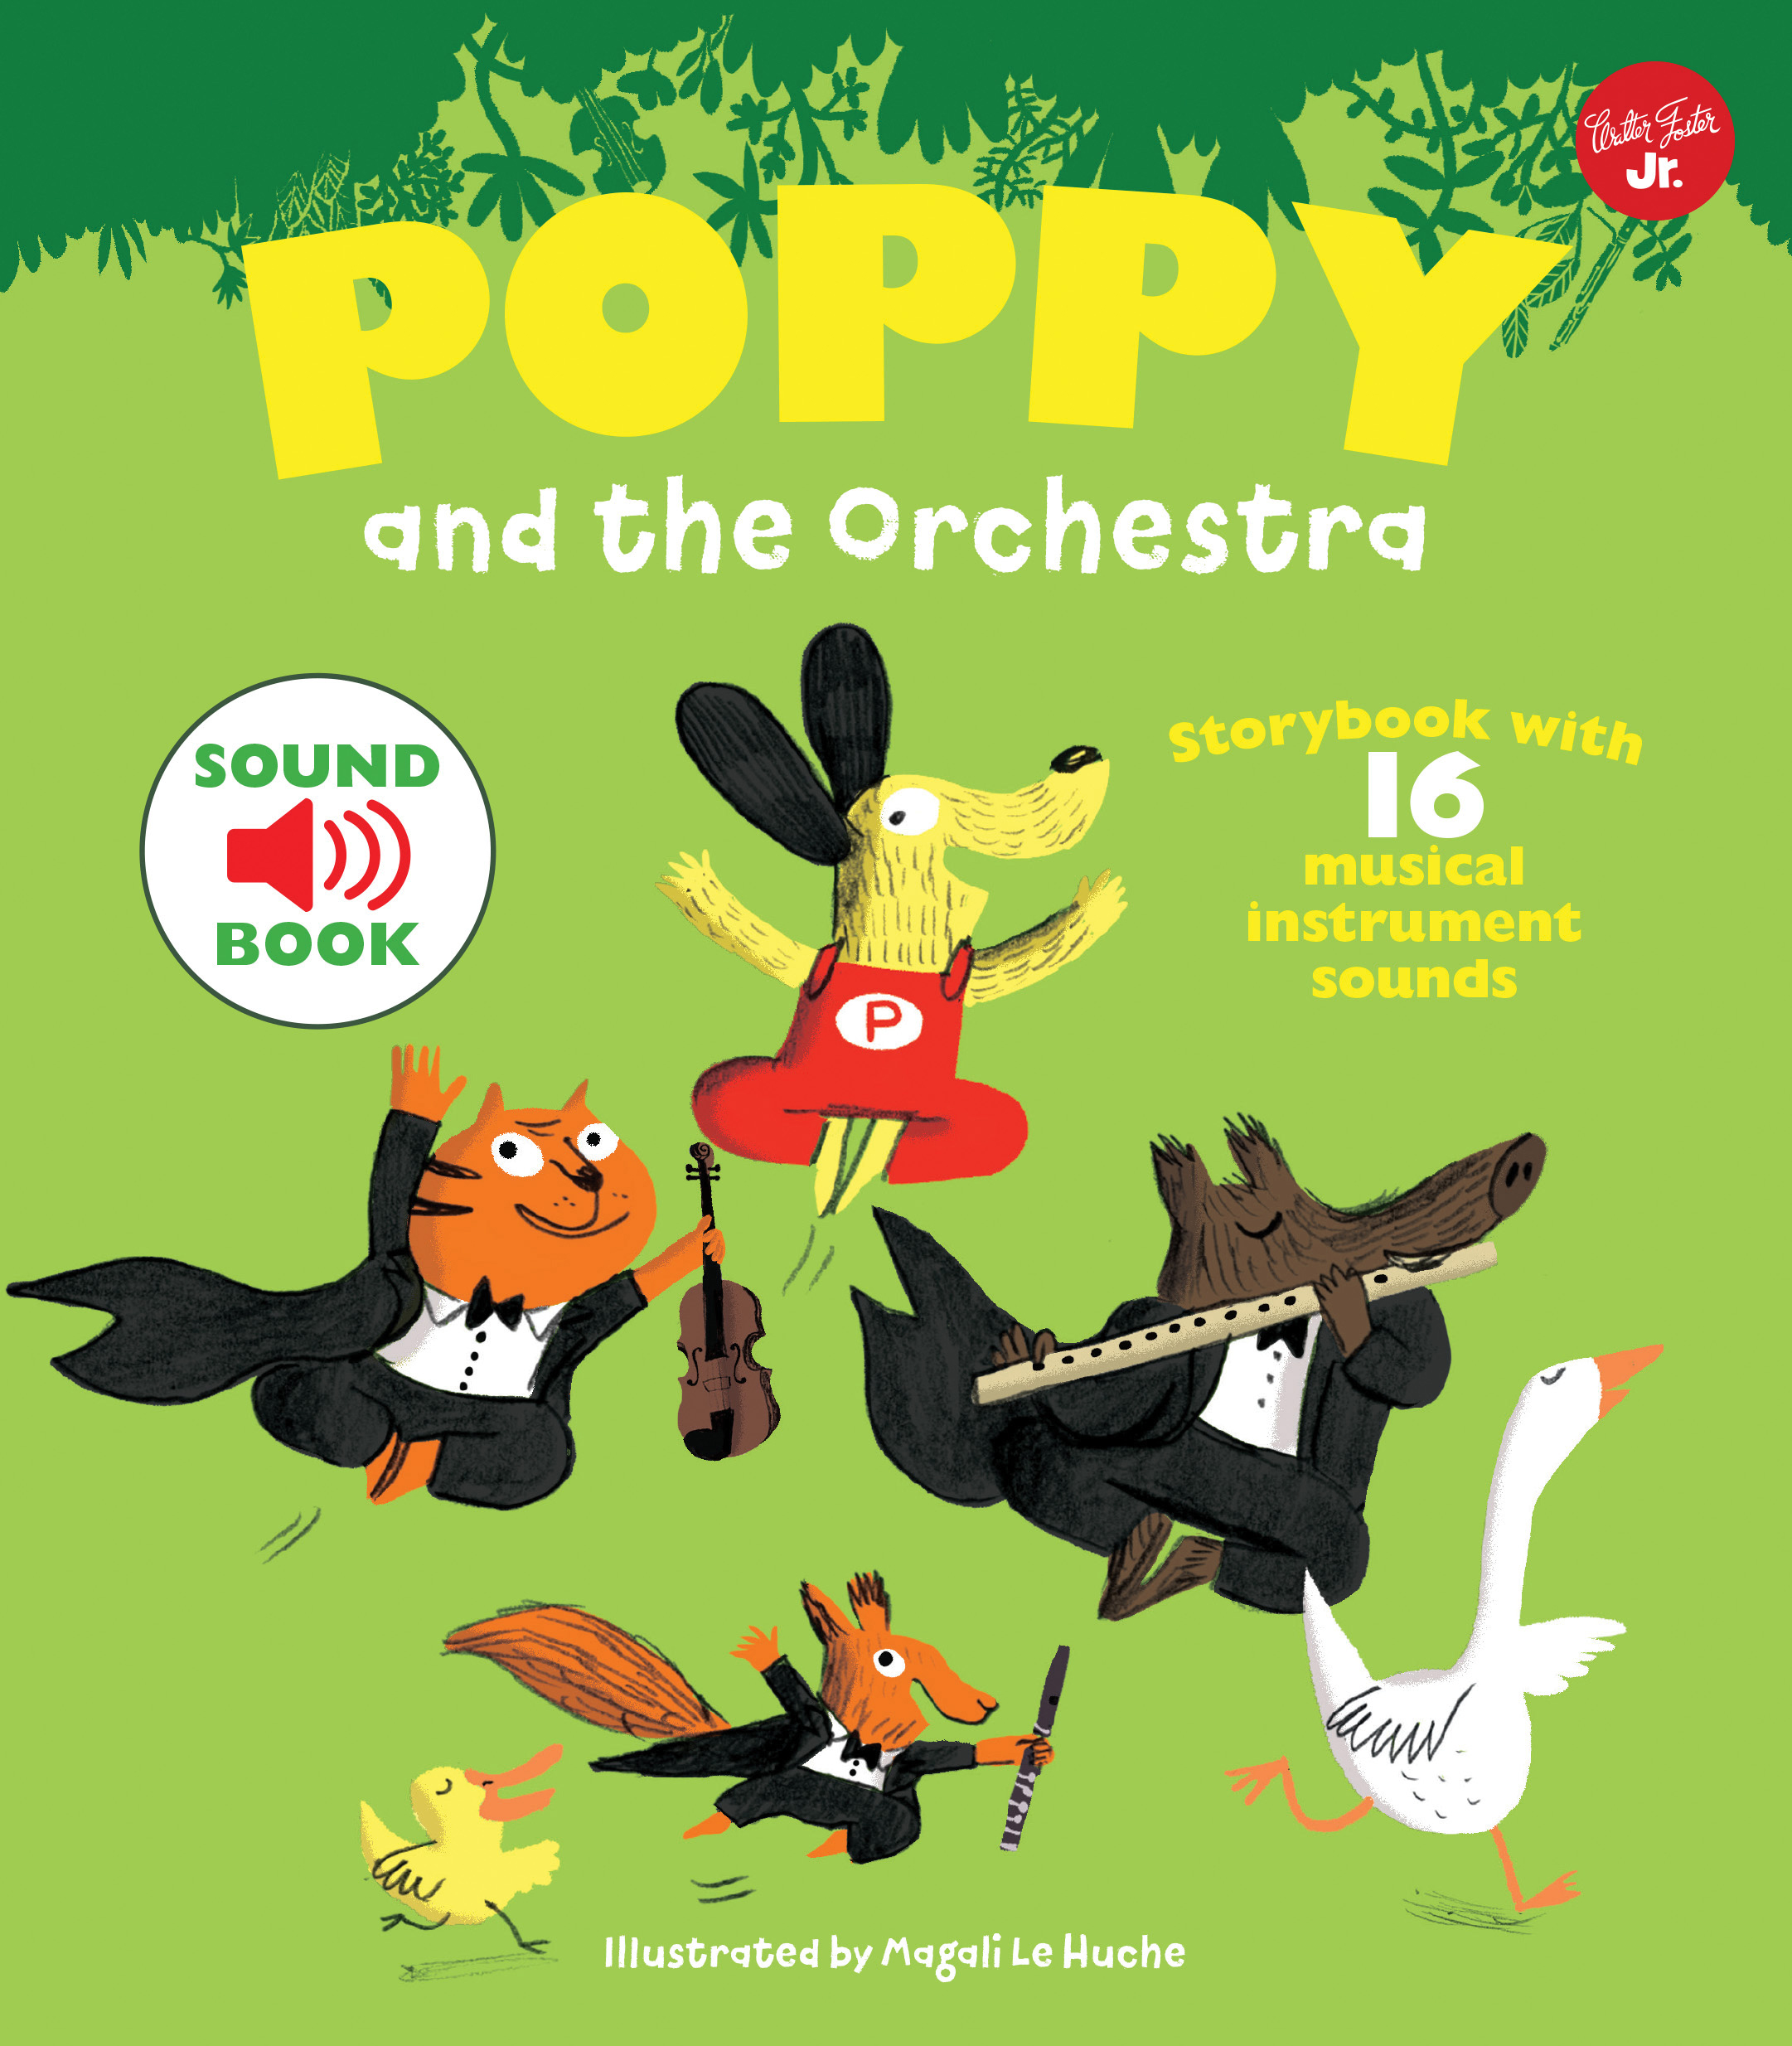 Poppy and the Orchestra - Illustrated by Magali Le Huche